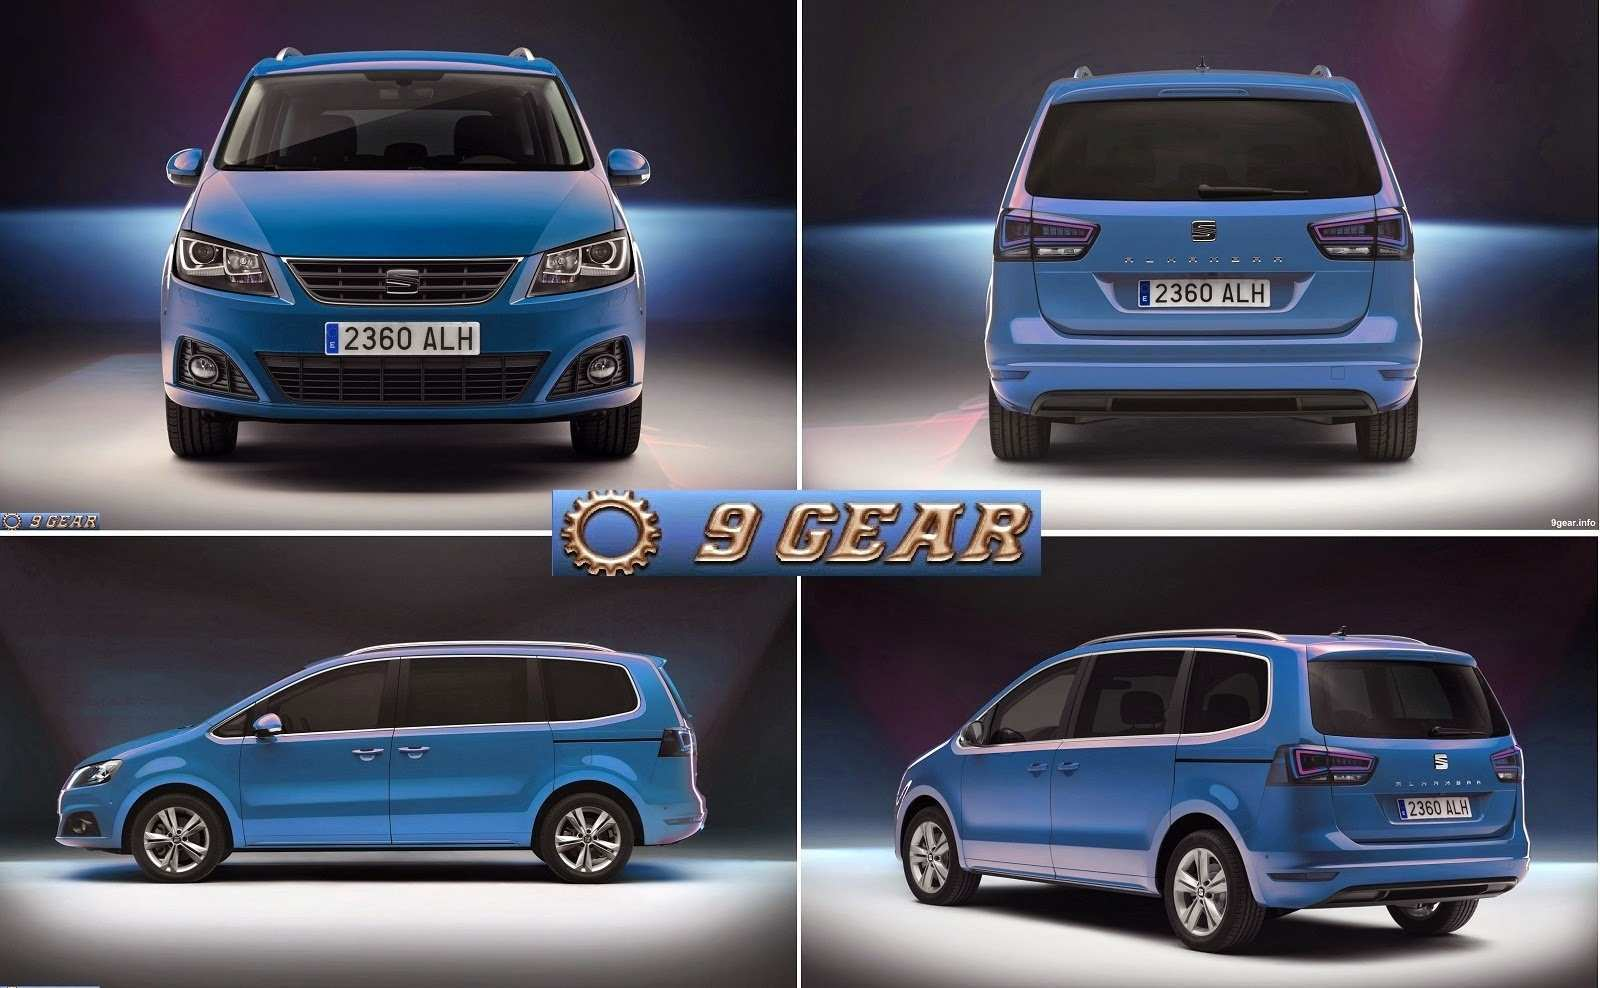 88 The Best 2020 Seat Alhambra Pictures